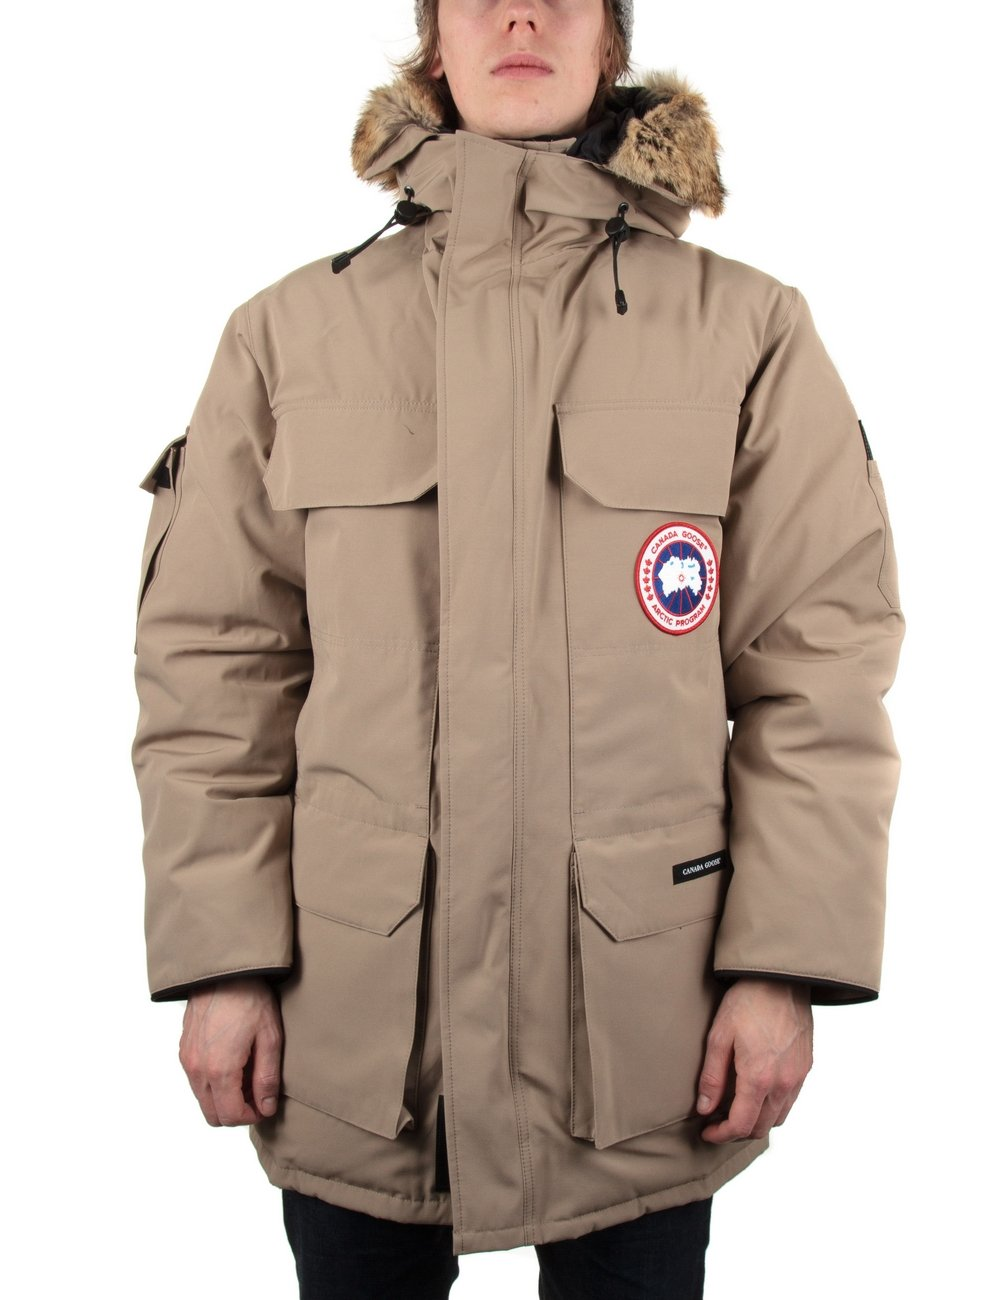 Canada Goose womens sale discounts - Canada Goose Expedition Parka - Tan - Canada Goose from Fat Buddha ...